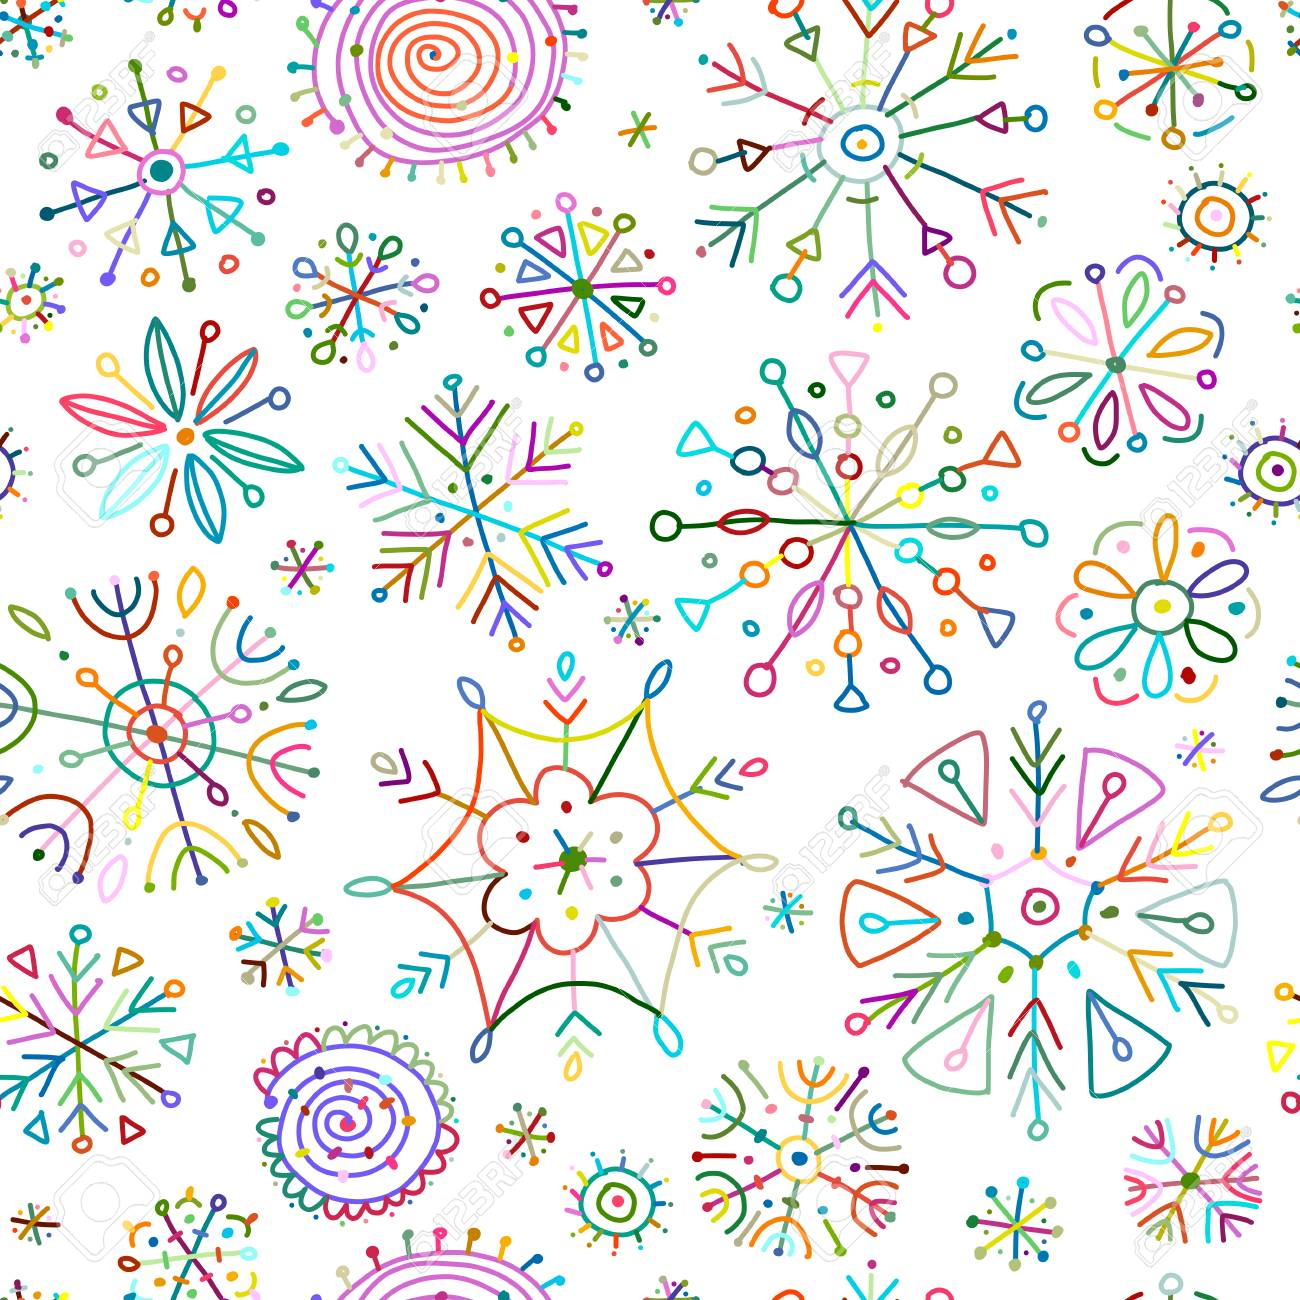 Hand drawn snowflakes, seamless pattern for your design. Vector illustration - 128174907